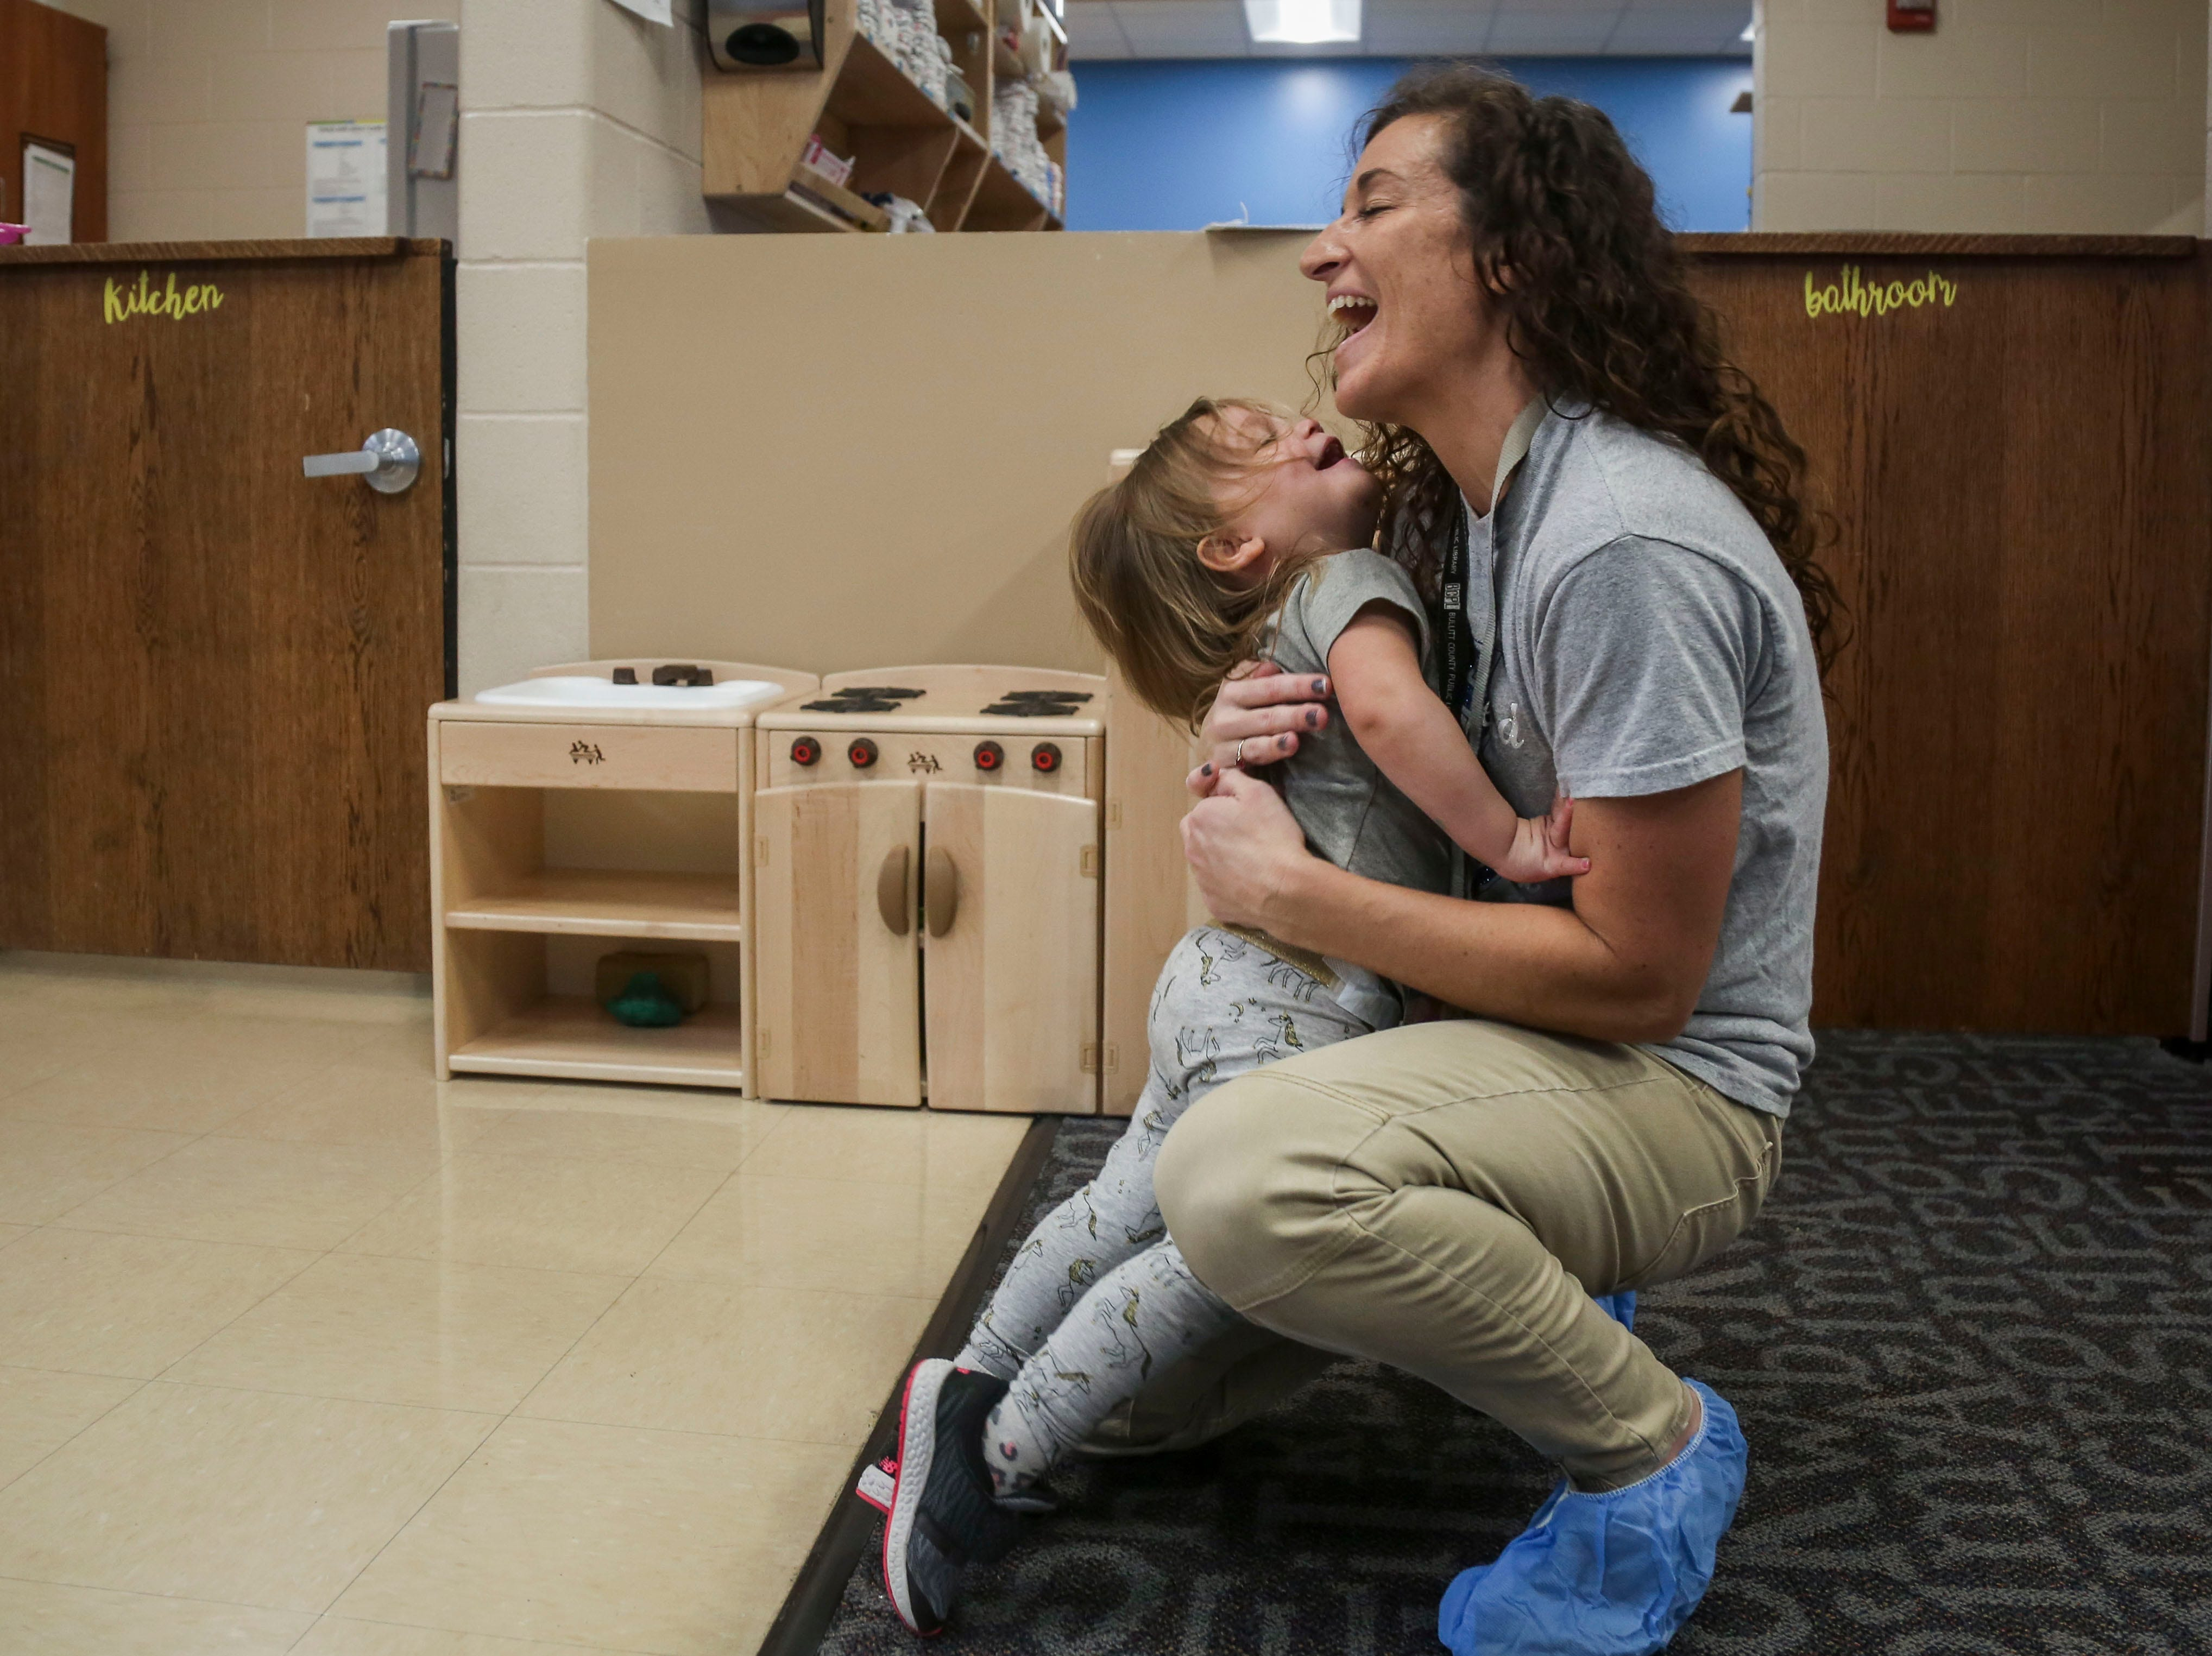 Chloe Dupree runs into the arms of Gabriella Greenwell, Instructional and Family Services Manager of OVEC Bullitt County Head Start/Early Head Startt, in the Early Head Start program at Brooks Elementary School in Brooks, Ky. on Feb. 5, 2019.